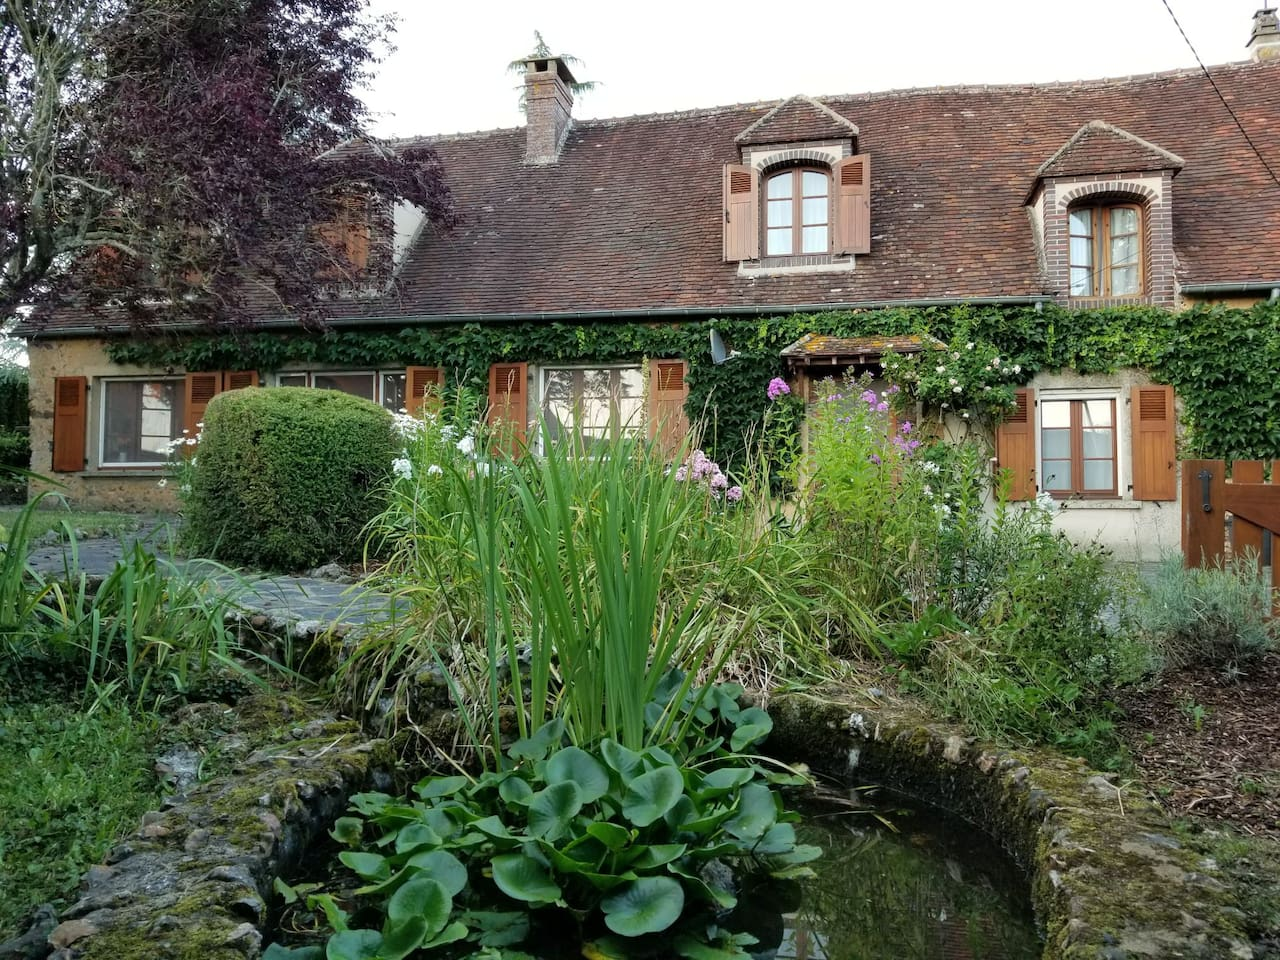 The House and the small pond in front